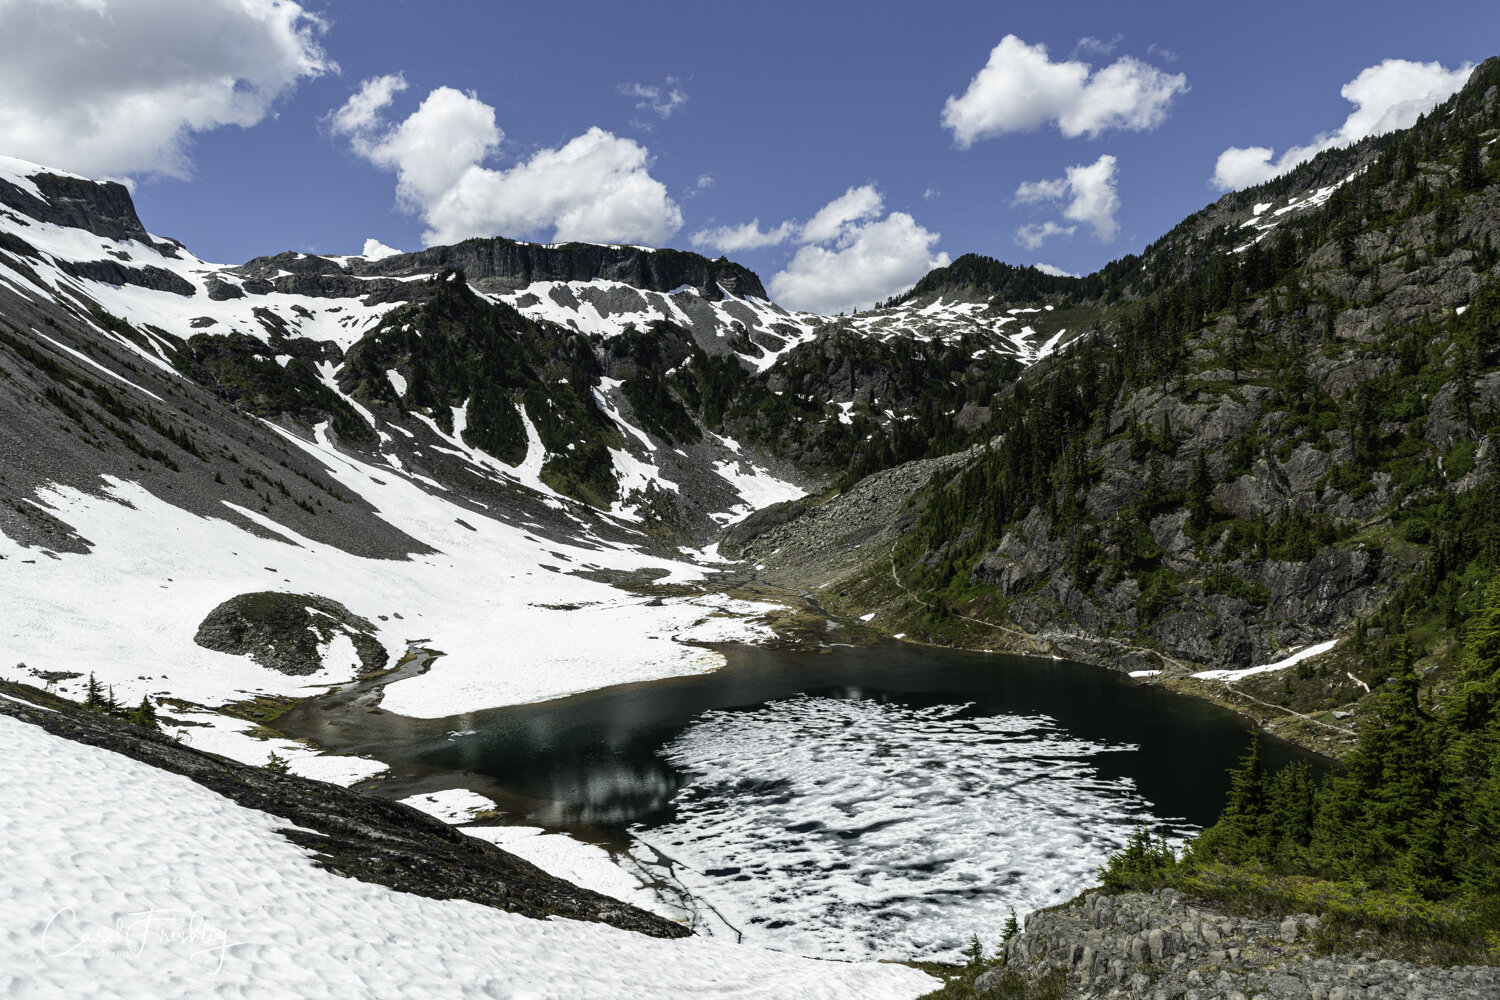 One of the lakes along Chain of Lakes Trail which goes through Heather Meadows